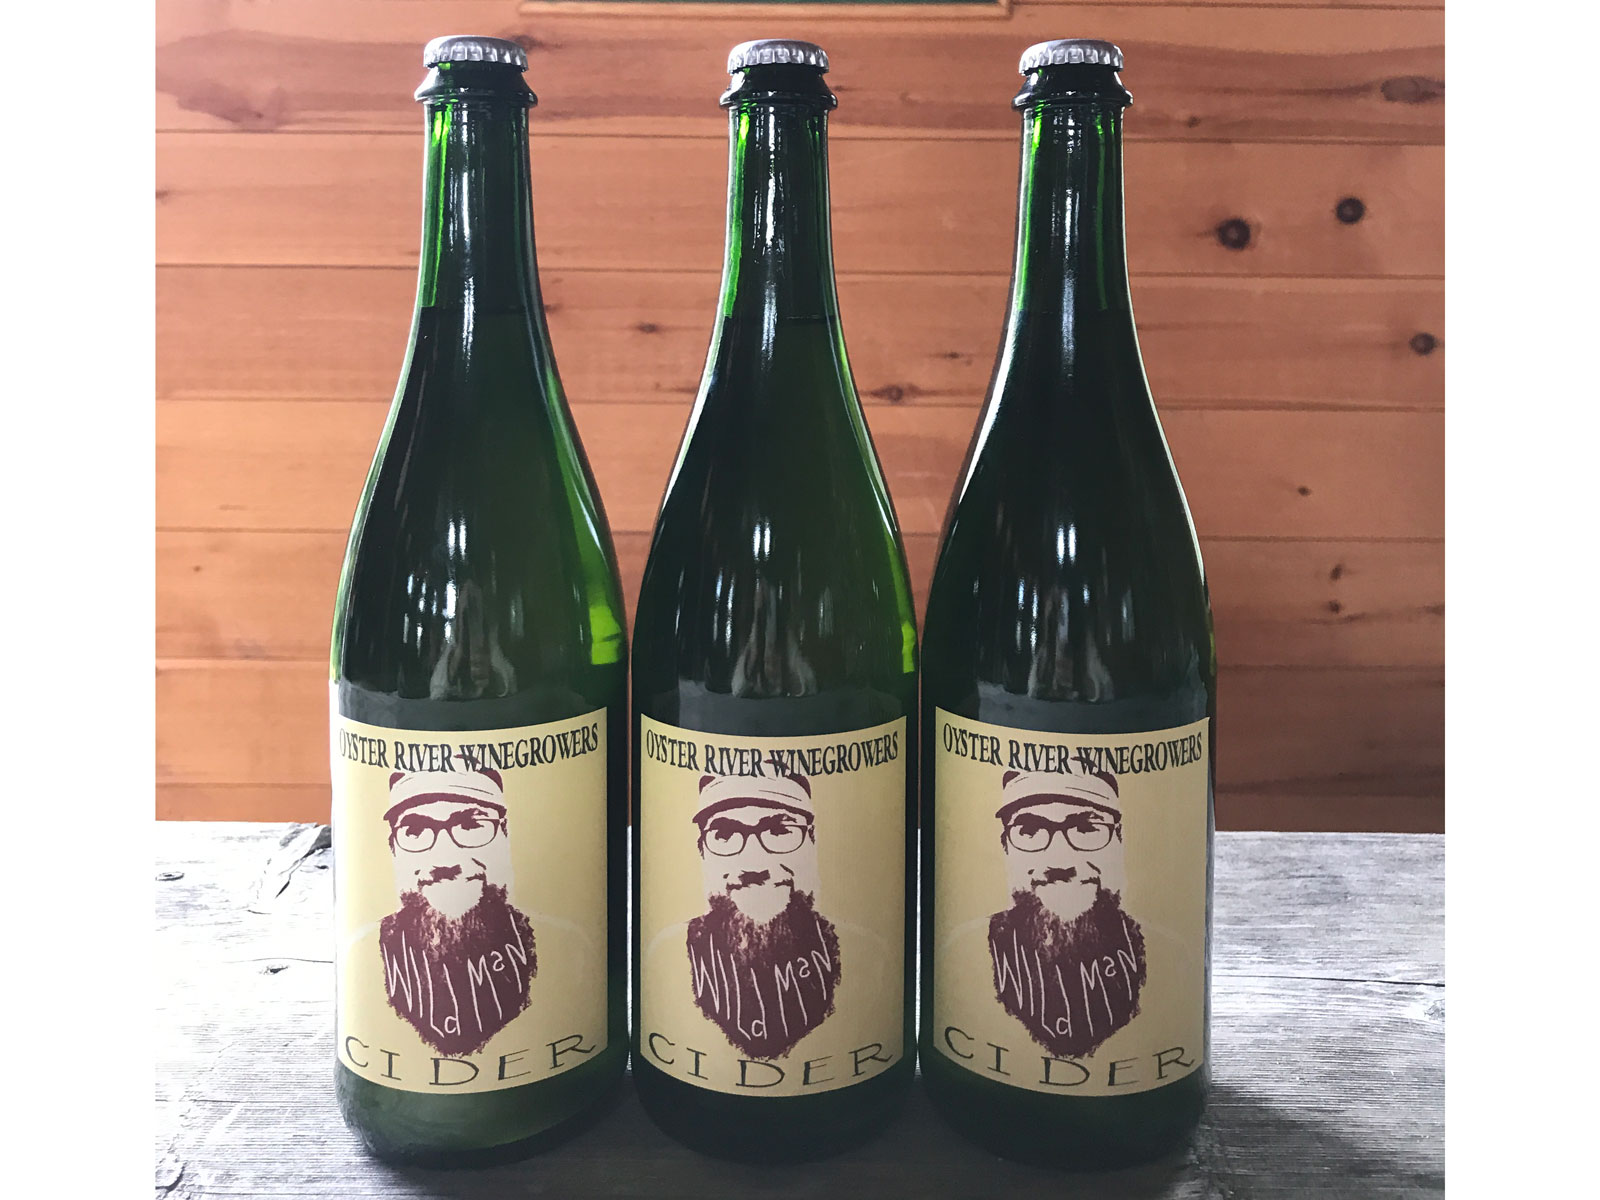 Oyster River Winegrowers Wildman Cider